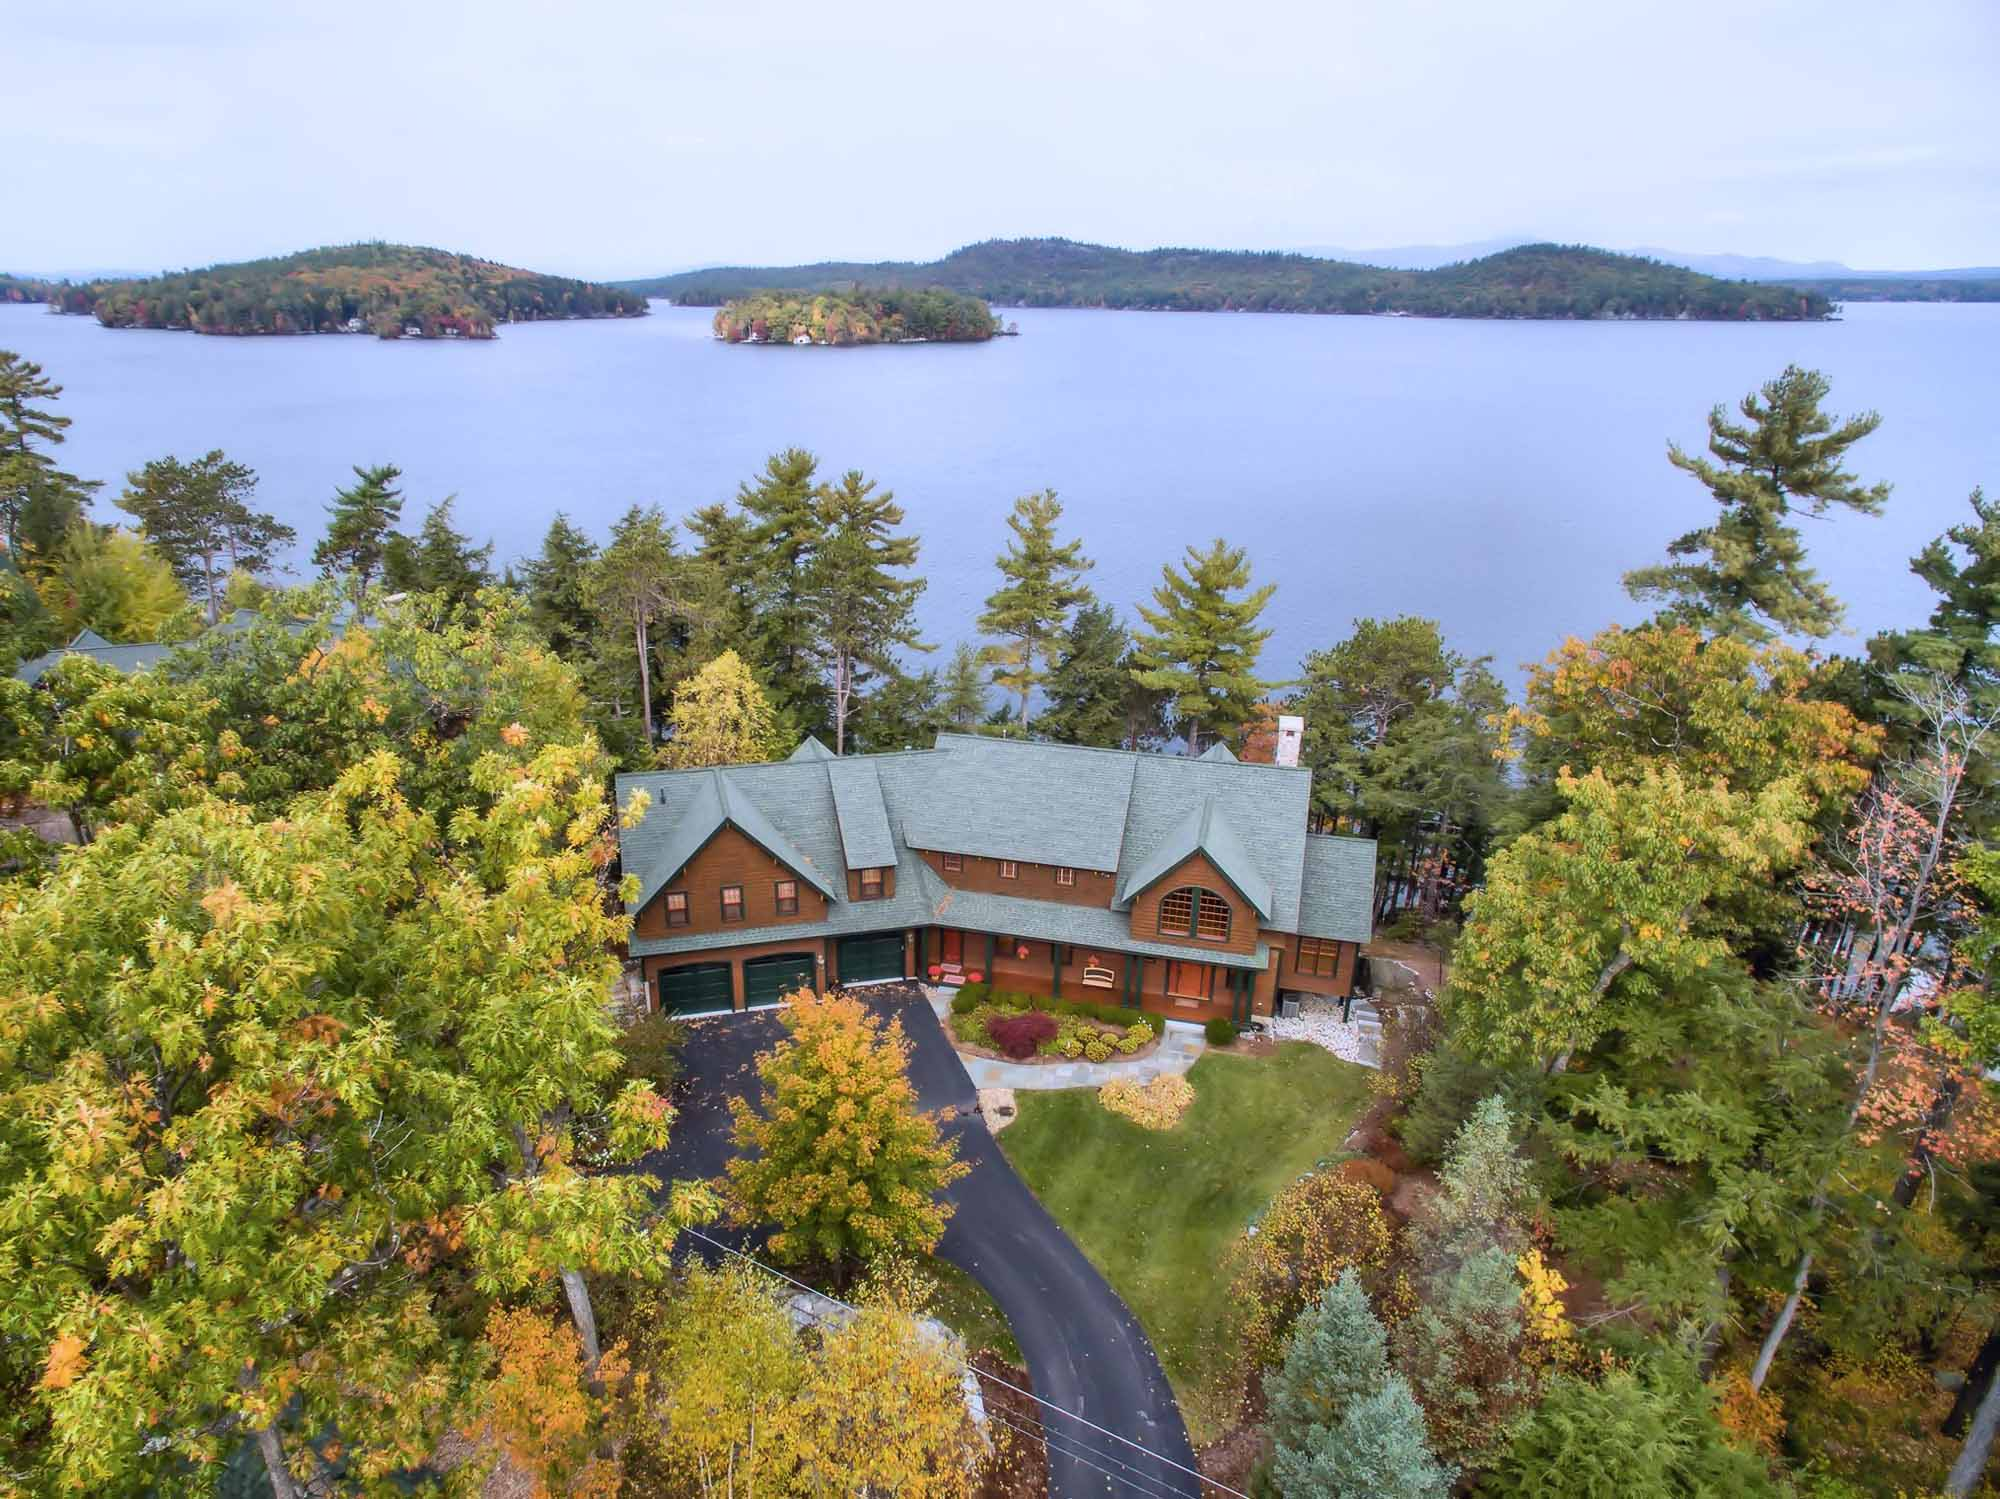 Single Family Home for Sale at 56 Timber Ridge Rd, Alton Alton, New Hampshire 03810 United States